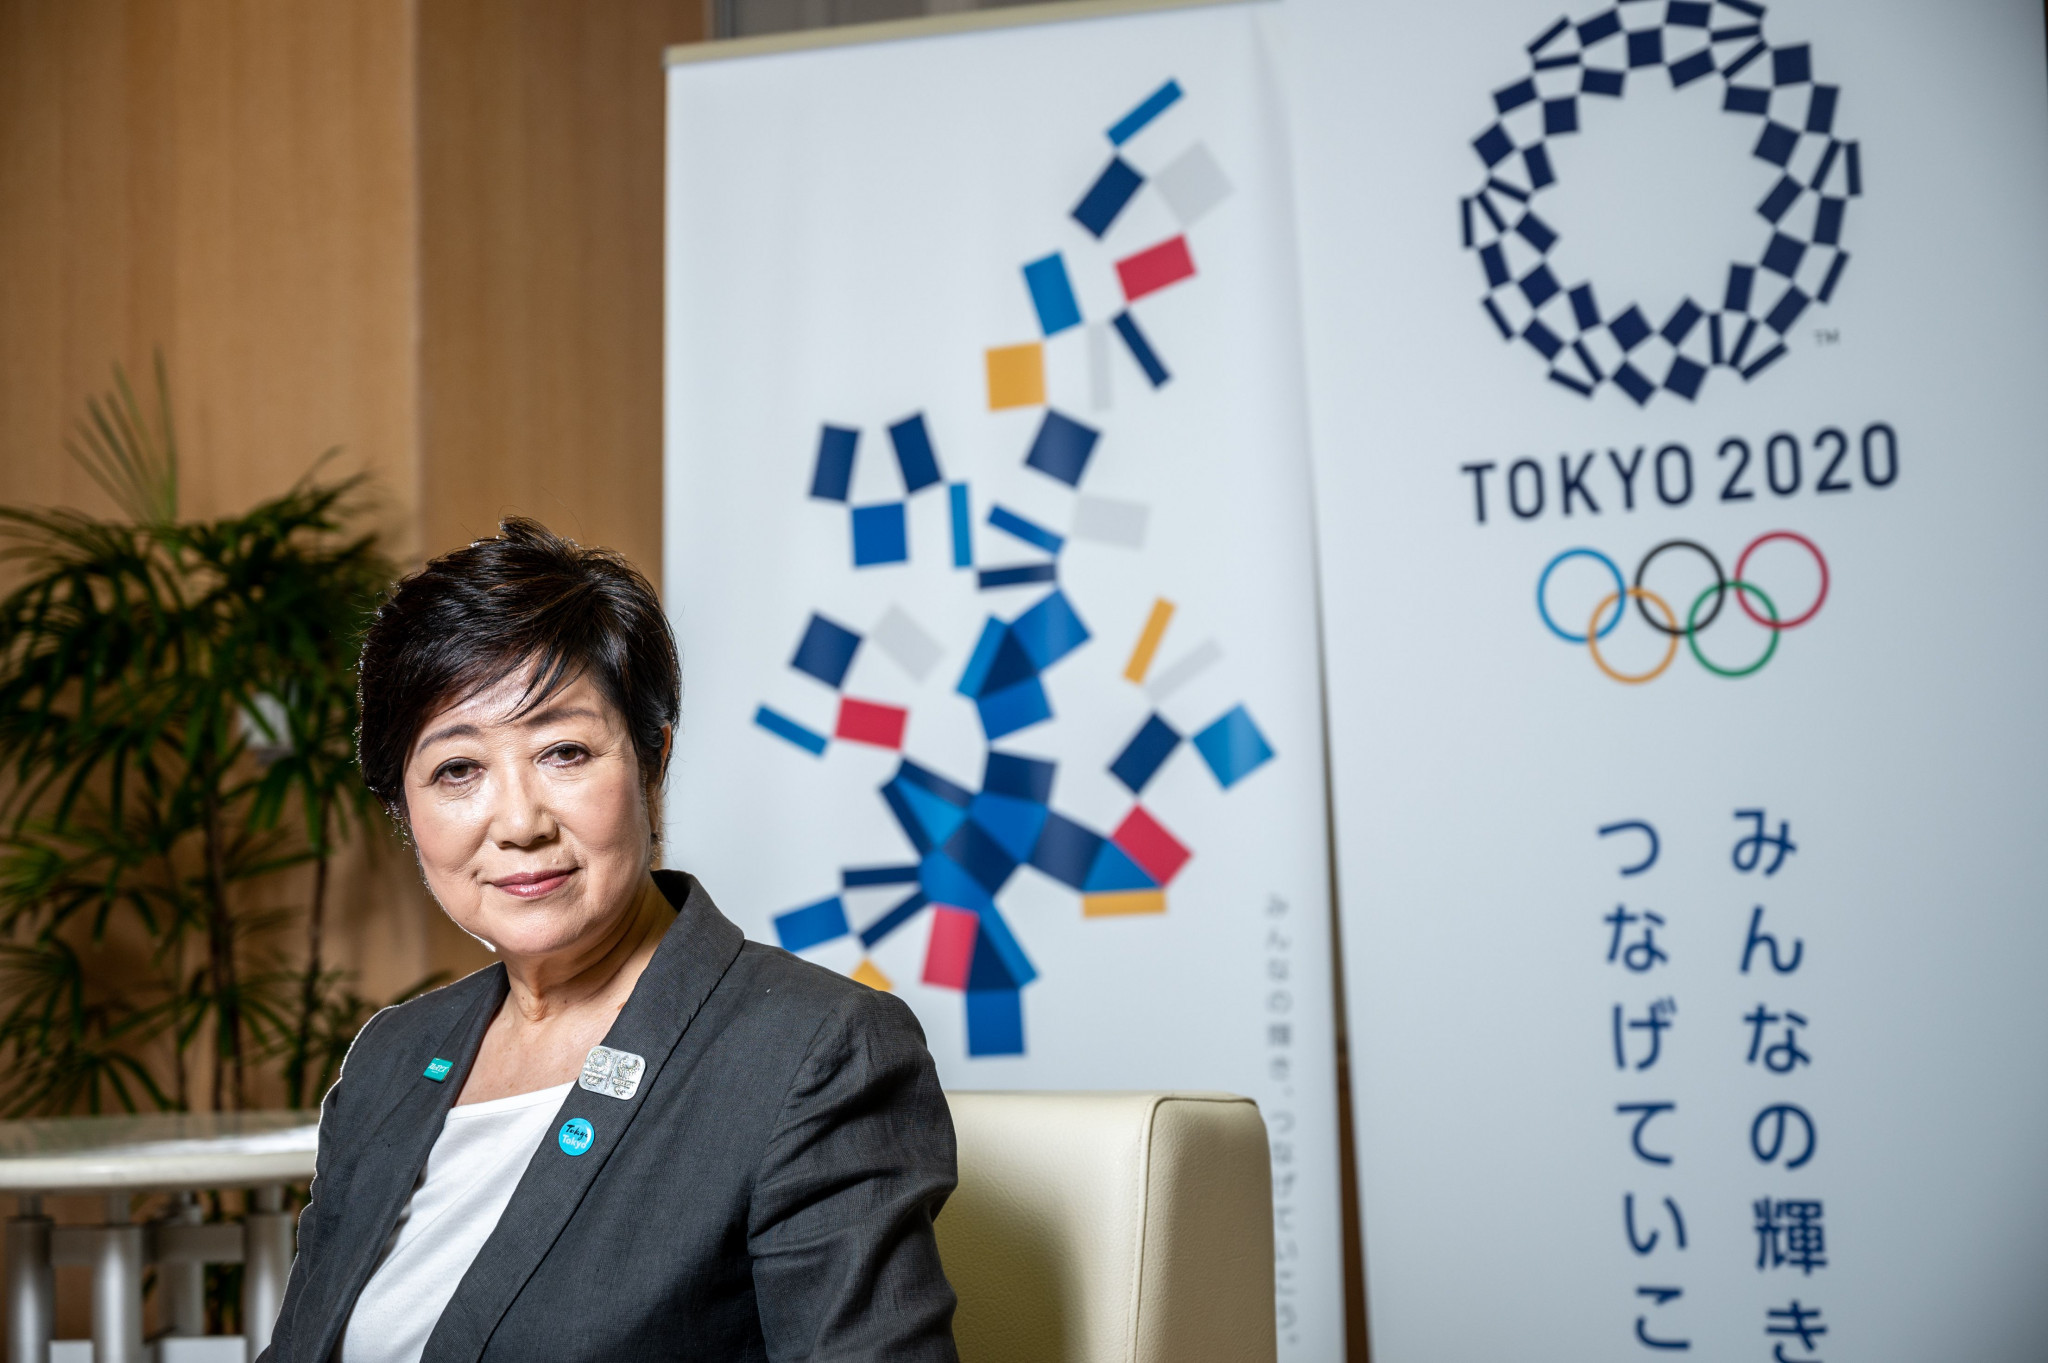 """Koike claims holding Tokyo 2020 next year would be a """"symbol"""" of world overcoming pandemic"""